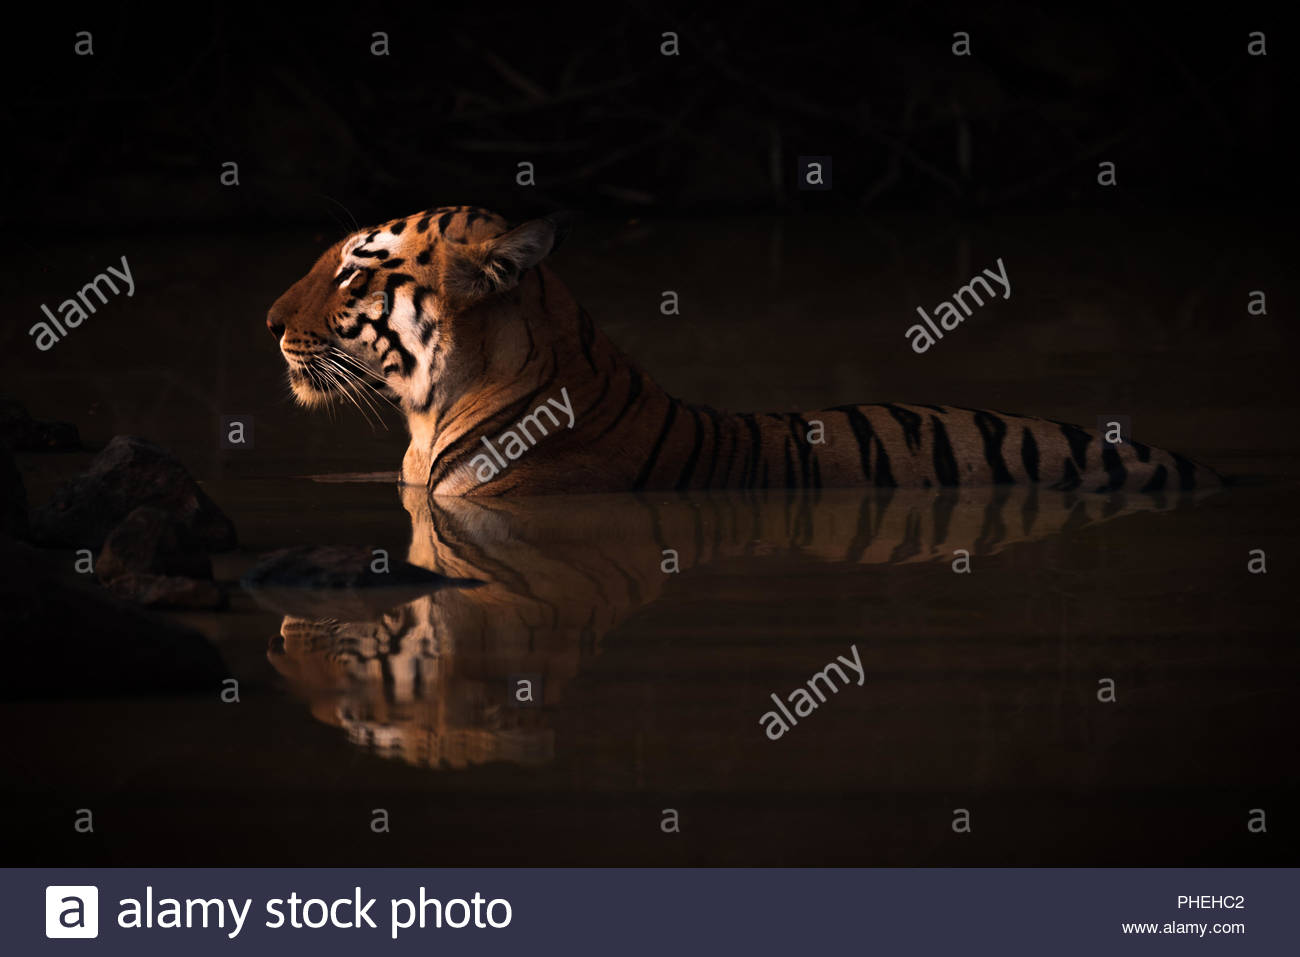 Bengal tiger lying in shadowy water hole - Stock Image